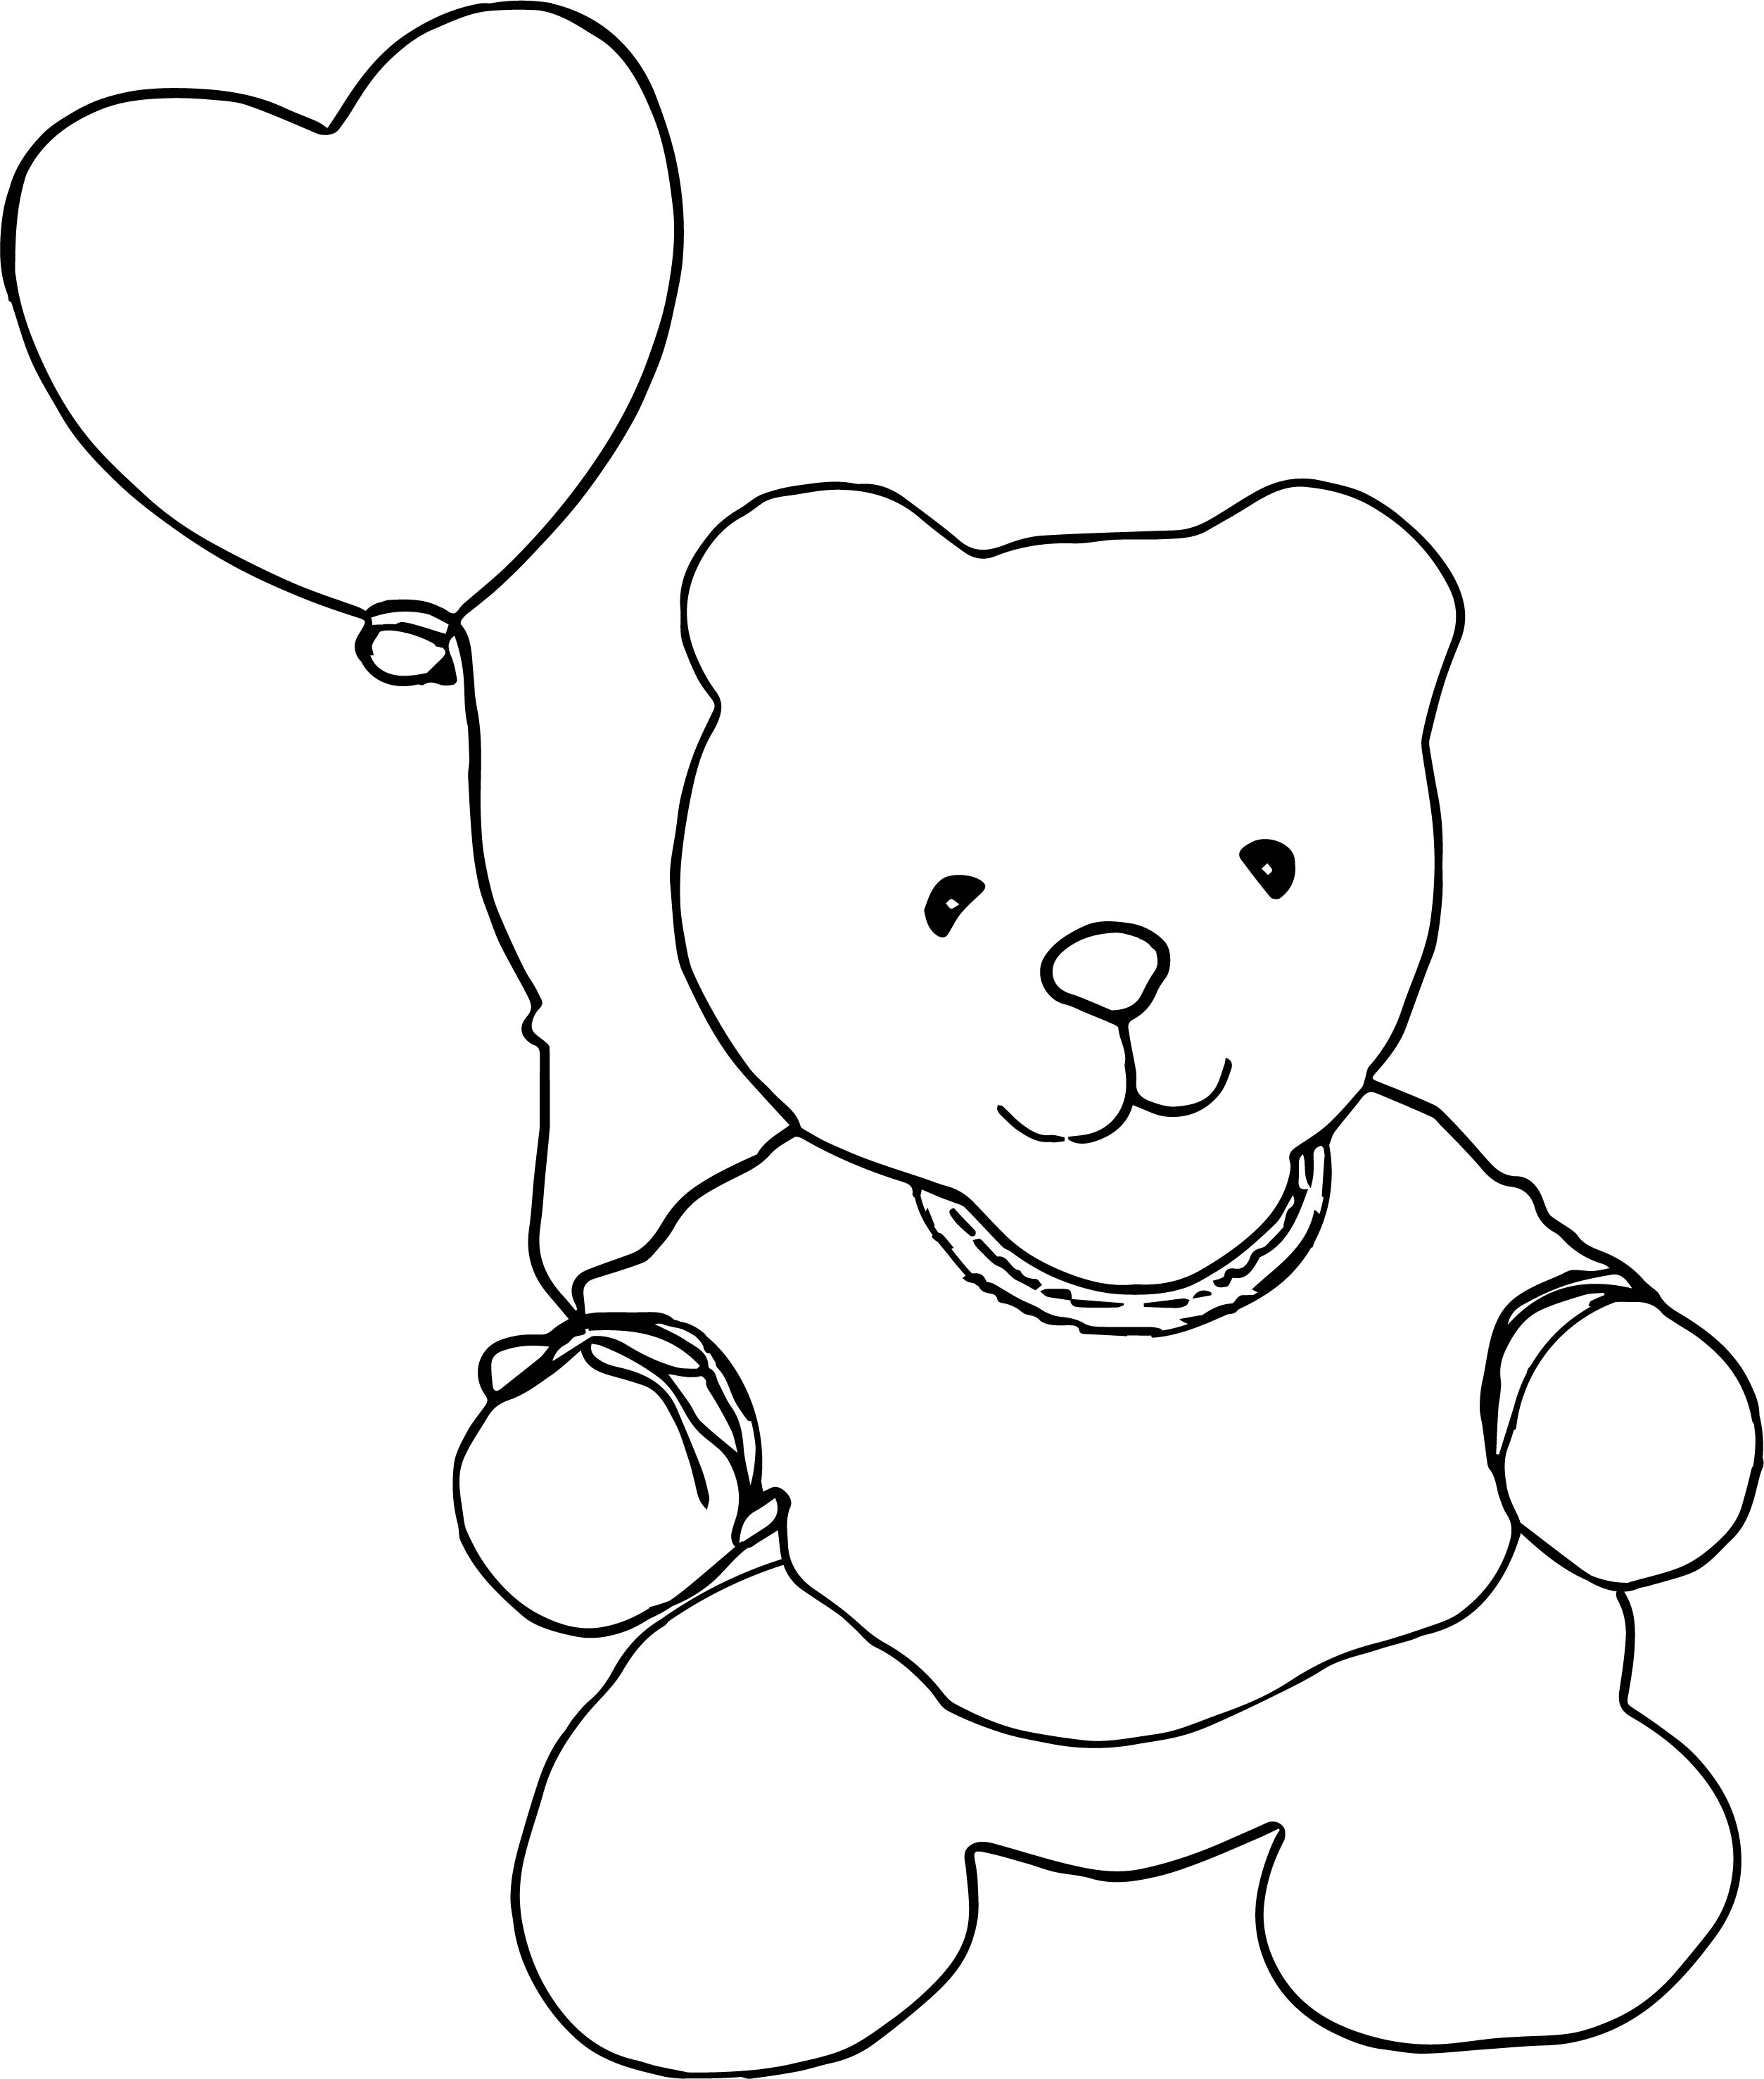 Move Bear Coloring Page